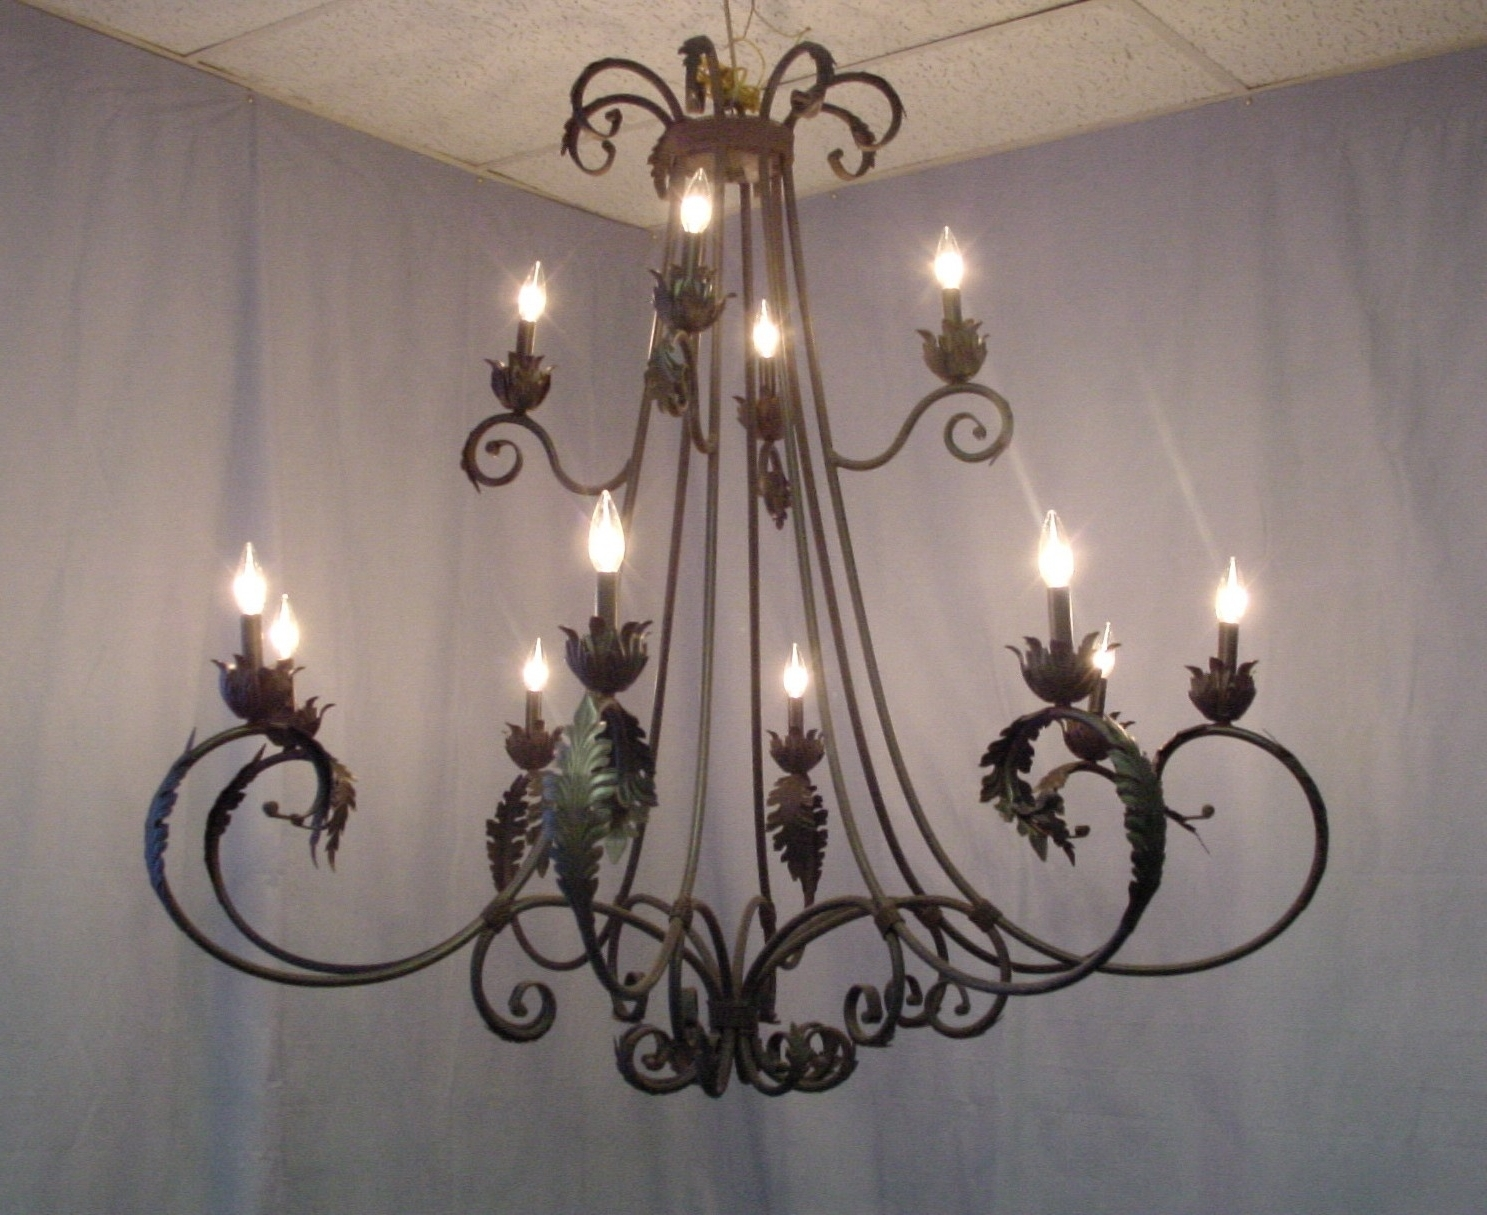 Wrought Iron Chandeliers Pertaining To Best And Newest Wrought Iron Chandeliers With Crystal Accents : Lamp World (View 12 of 15)